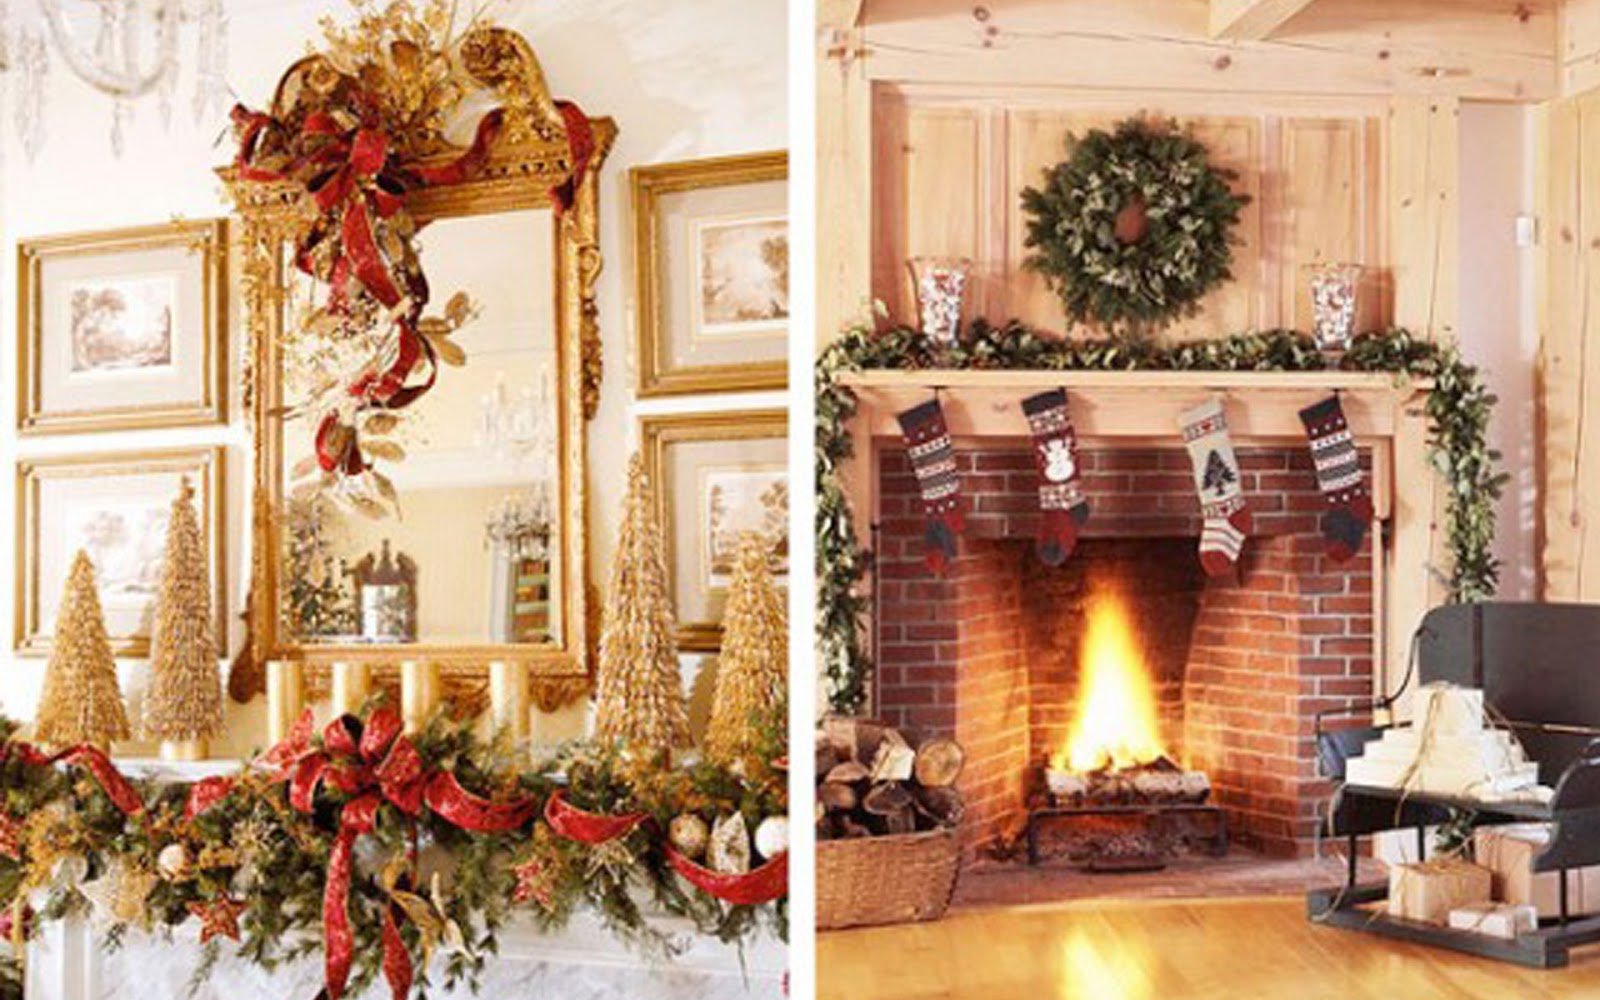 Decorate Your Mantel Or Chimney For Christmas : Let's